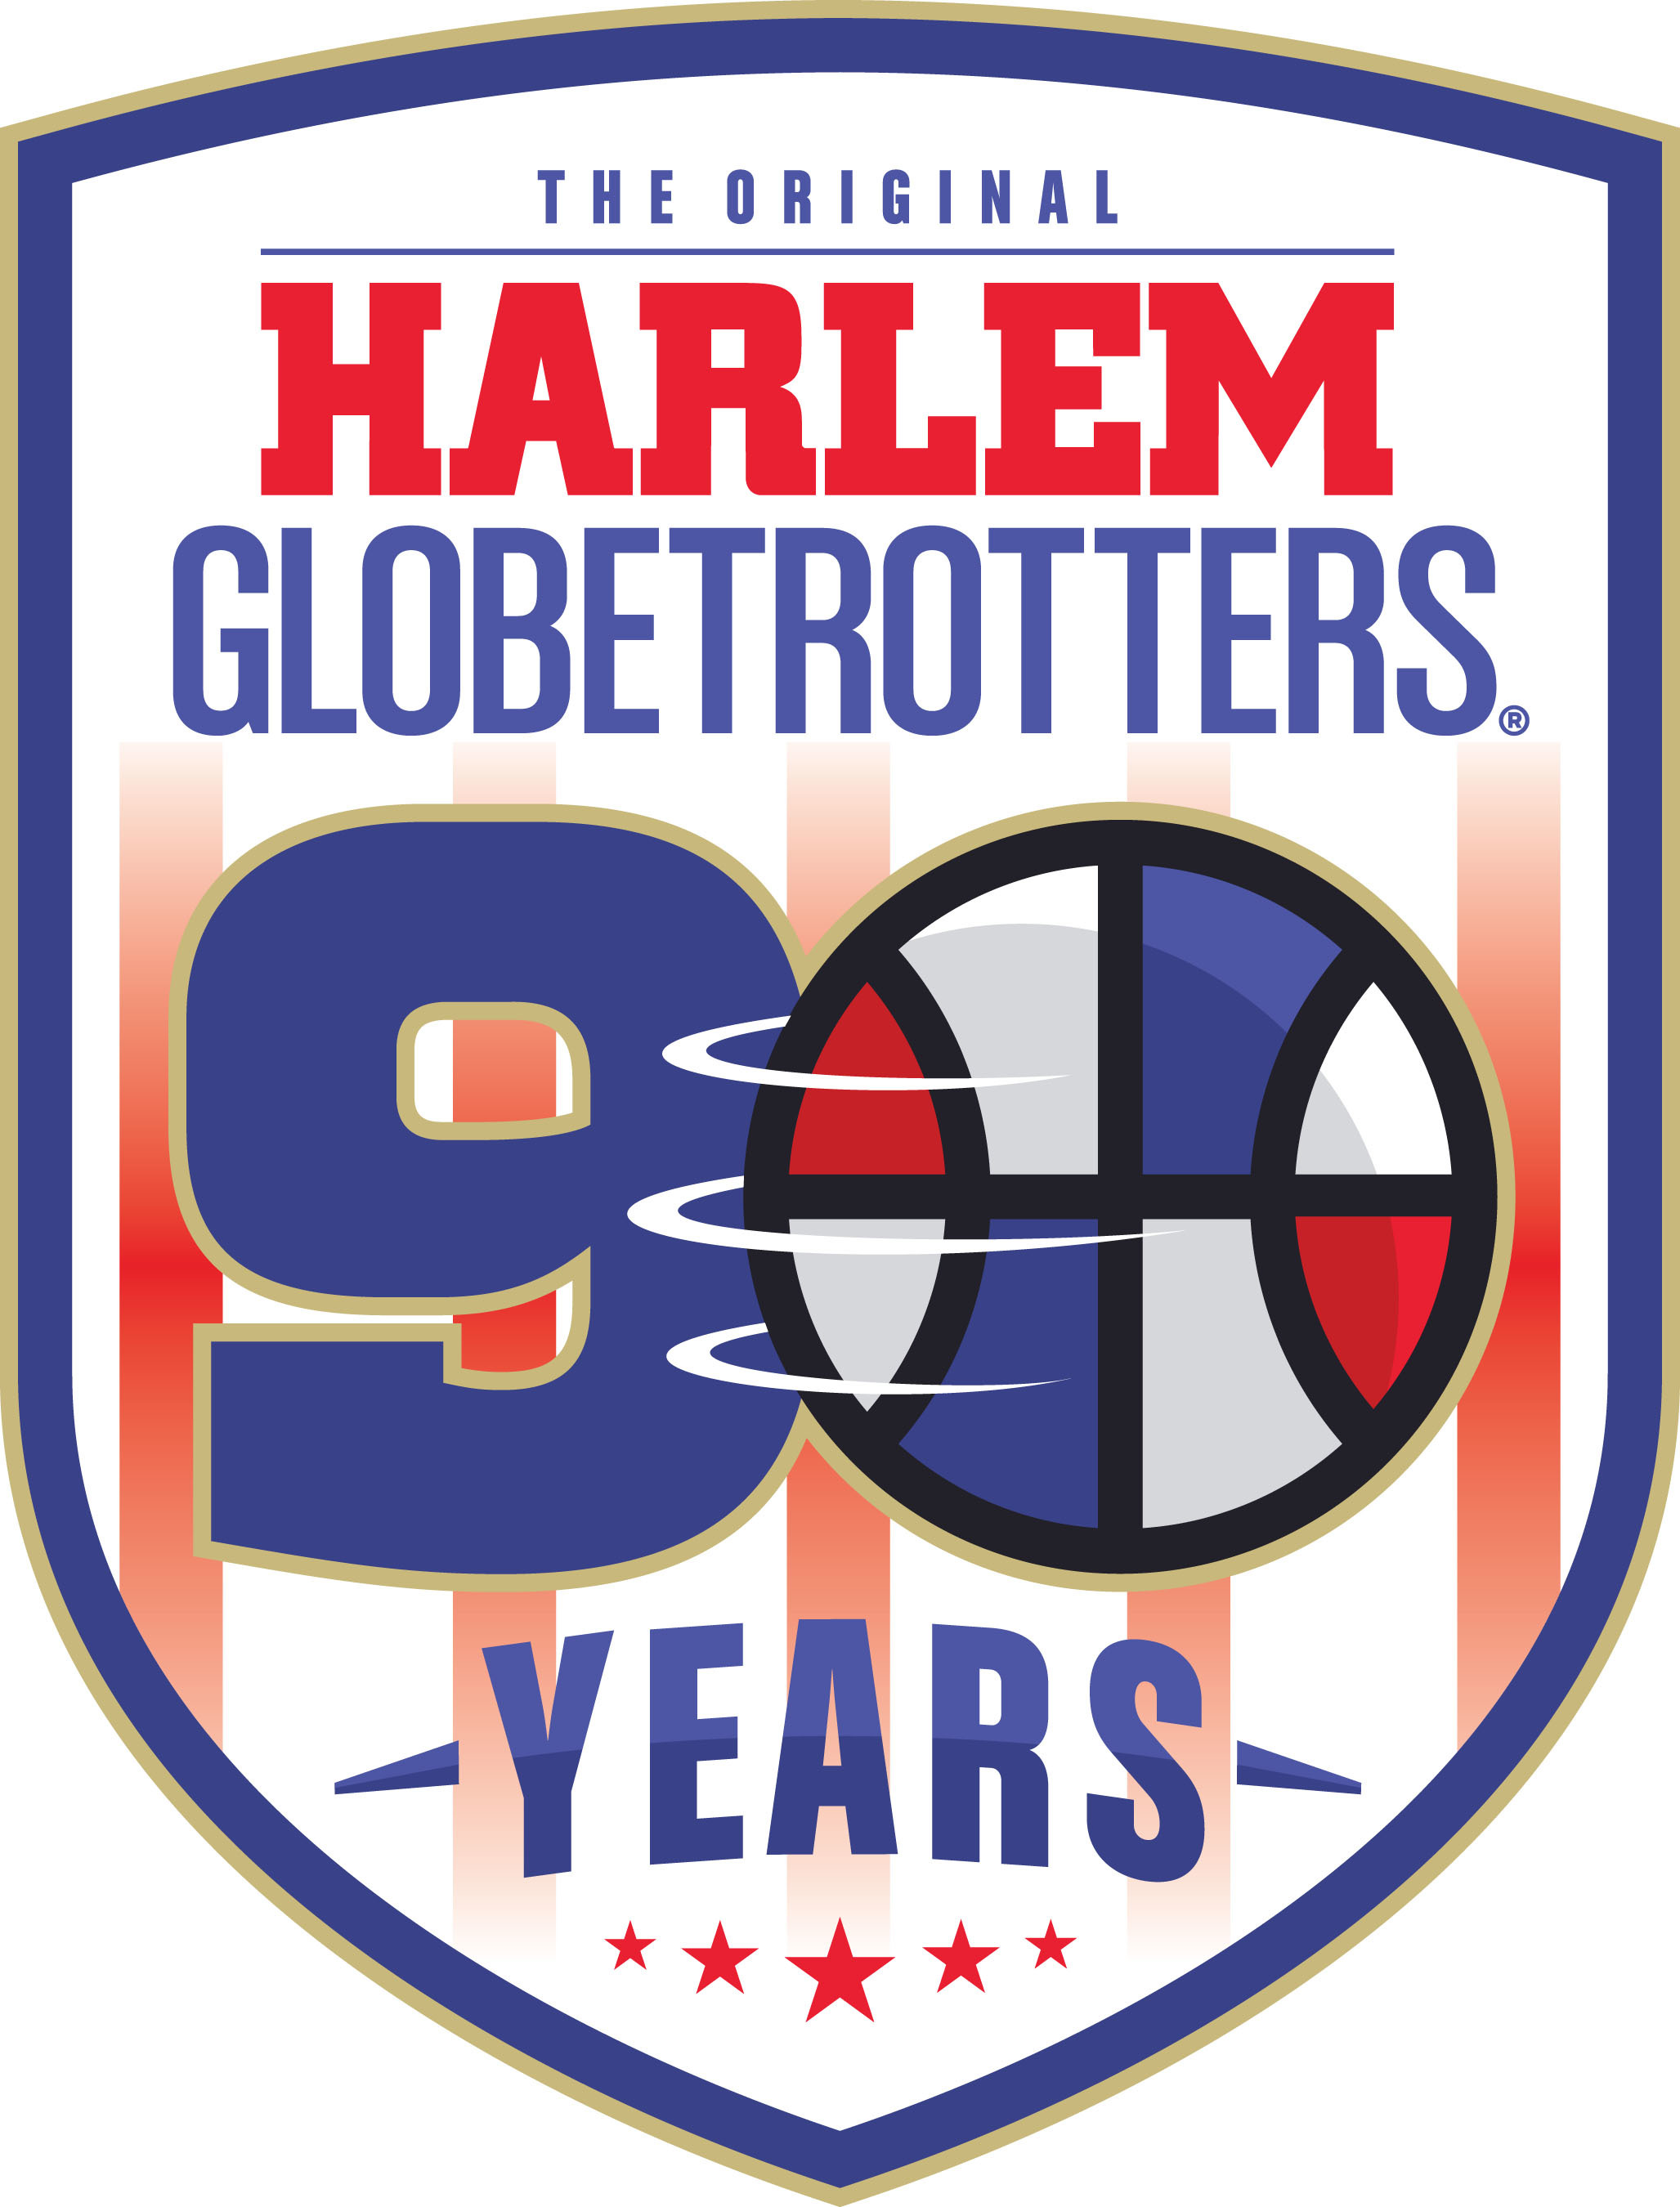 Harlem Globetrotters Partner With Award-Winning Technology Company Experience To Create Unique Fan Opportunities